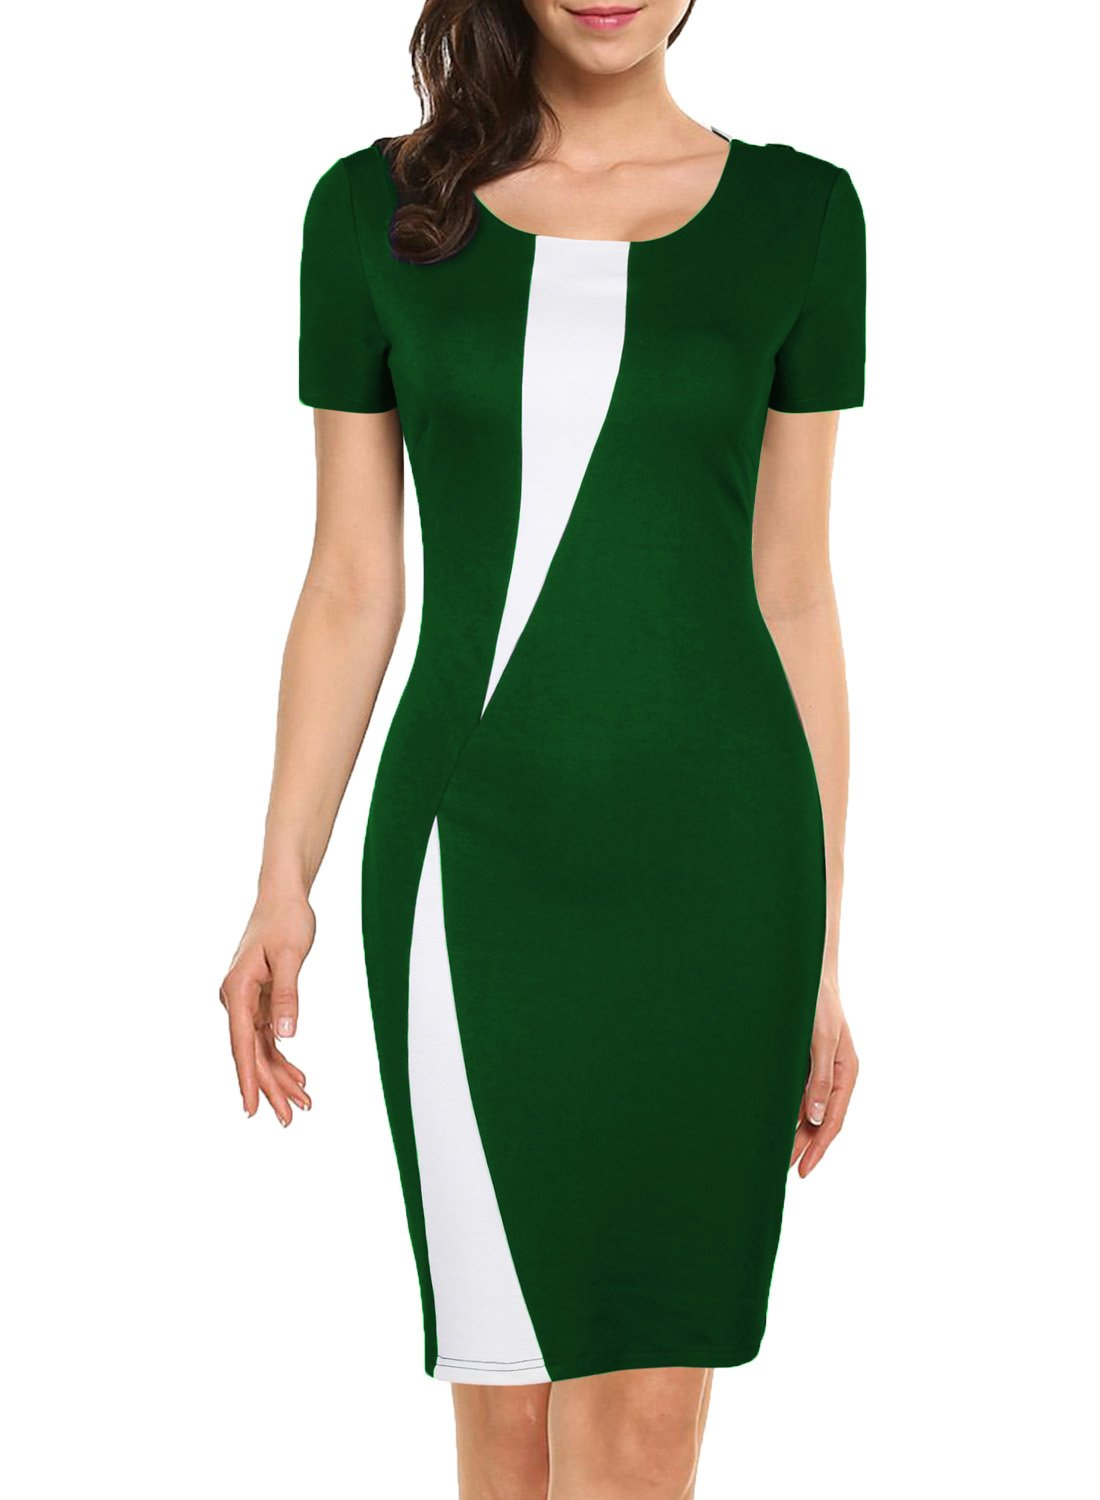 WOOSEA Women's Short Sleeve Colorblock Slim Bodycon Business Pencil Dress (X-Large, Green+White)